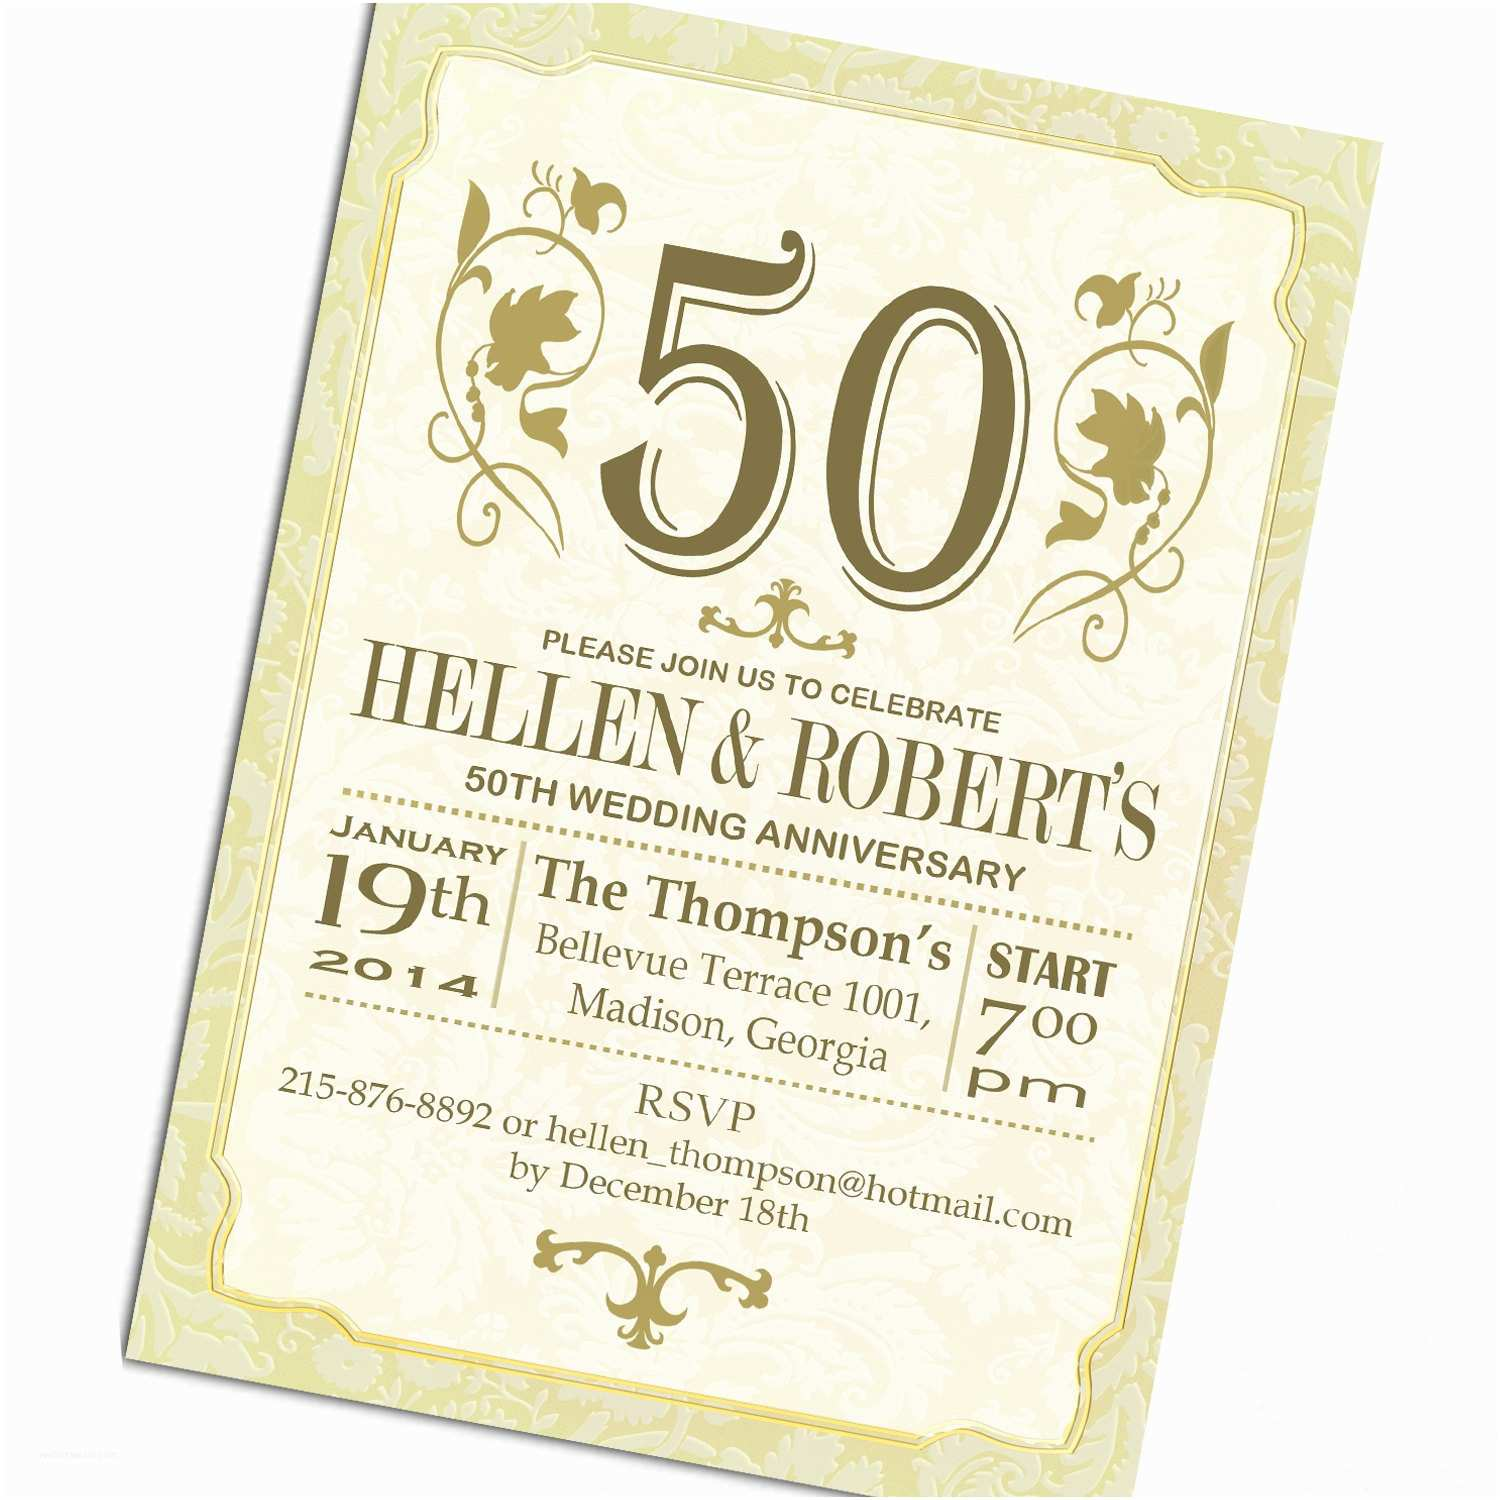 Golden Wedding Anniversary Invitations 50th Gold White Wedding Anniversary Invitation Digital